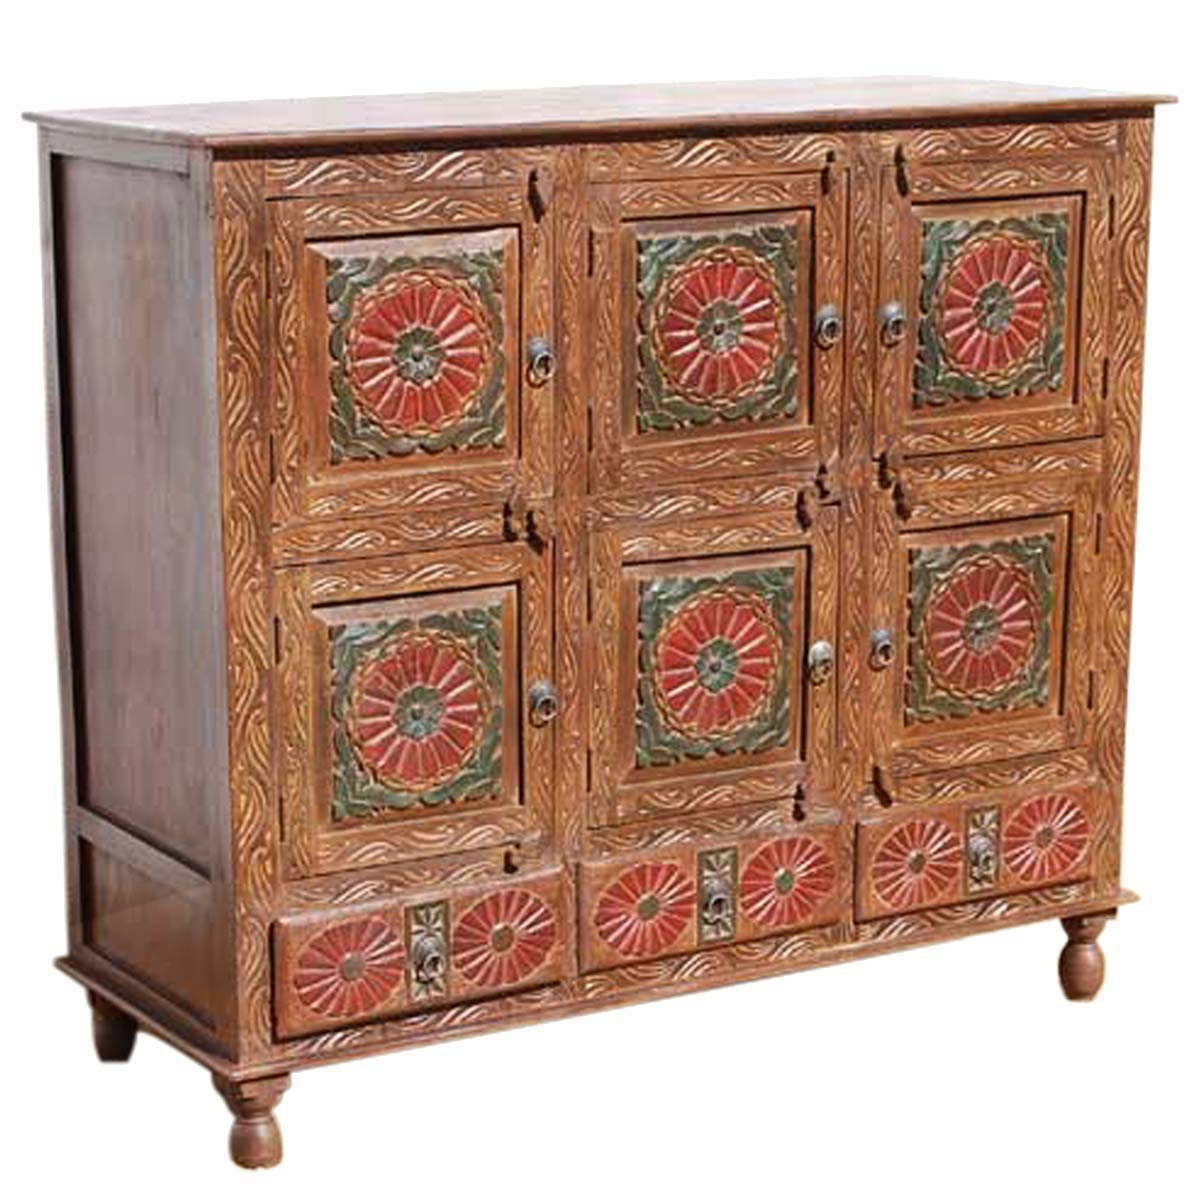 Starburst 3 Door Sideboards Within Favorite Chicago Red Poppy Handcarved 9 Compartment 3 Drawer Sideboard (View 16 of 20)